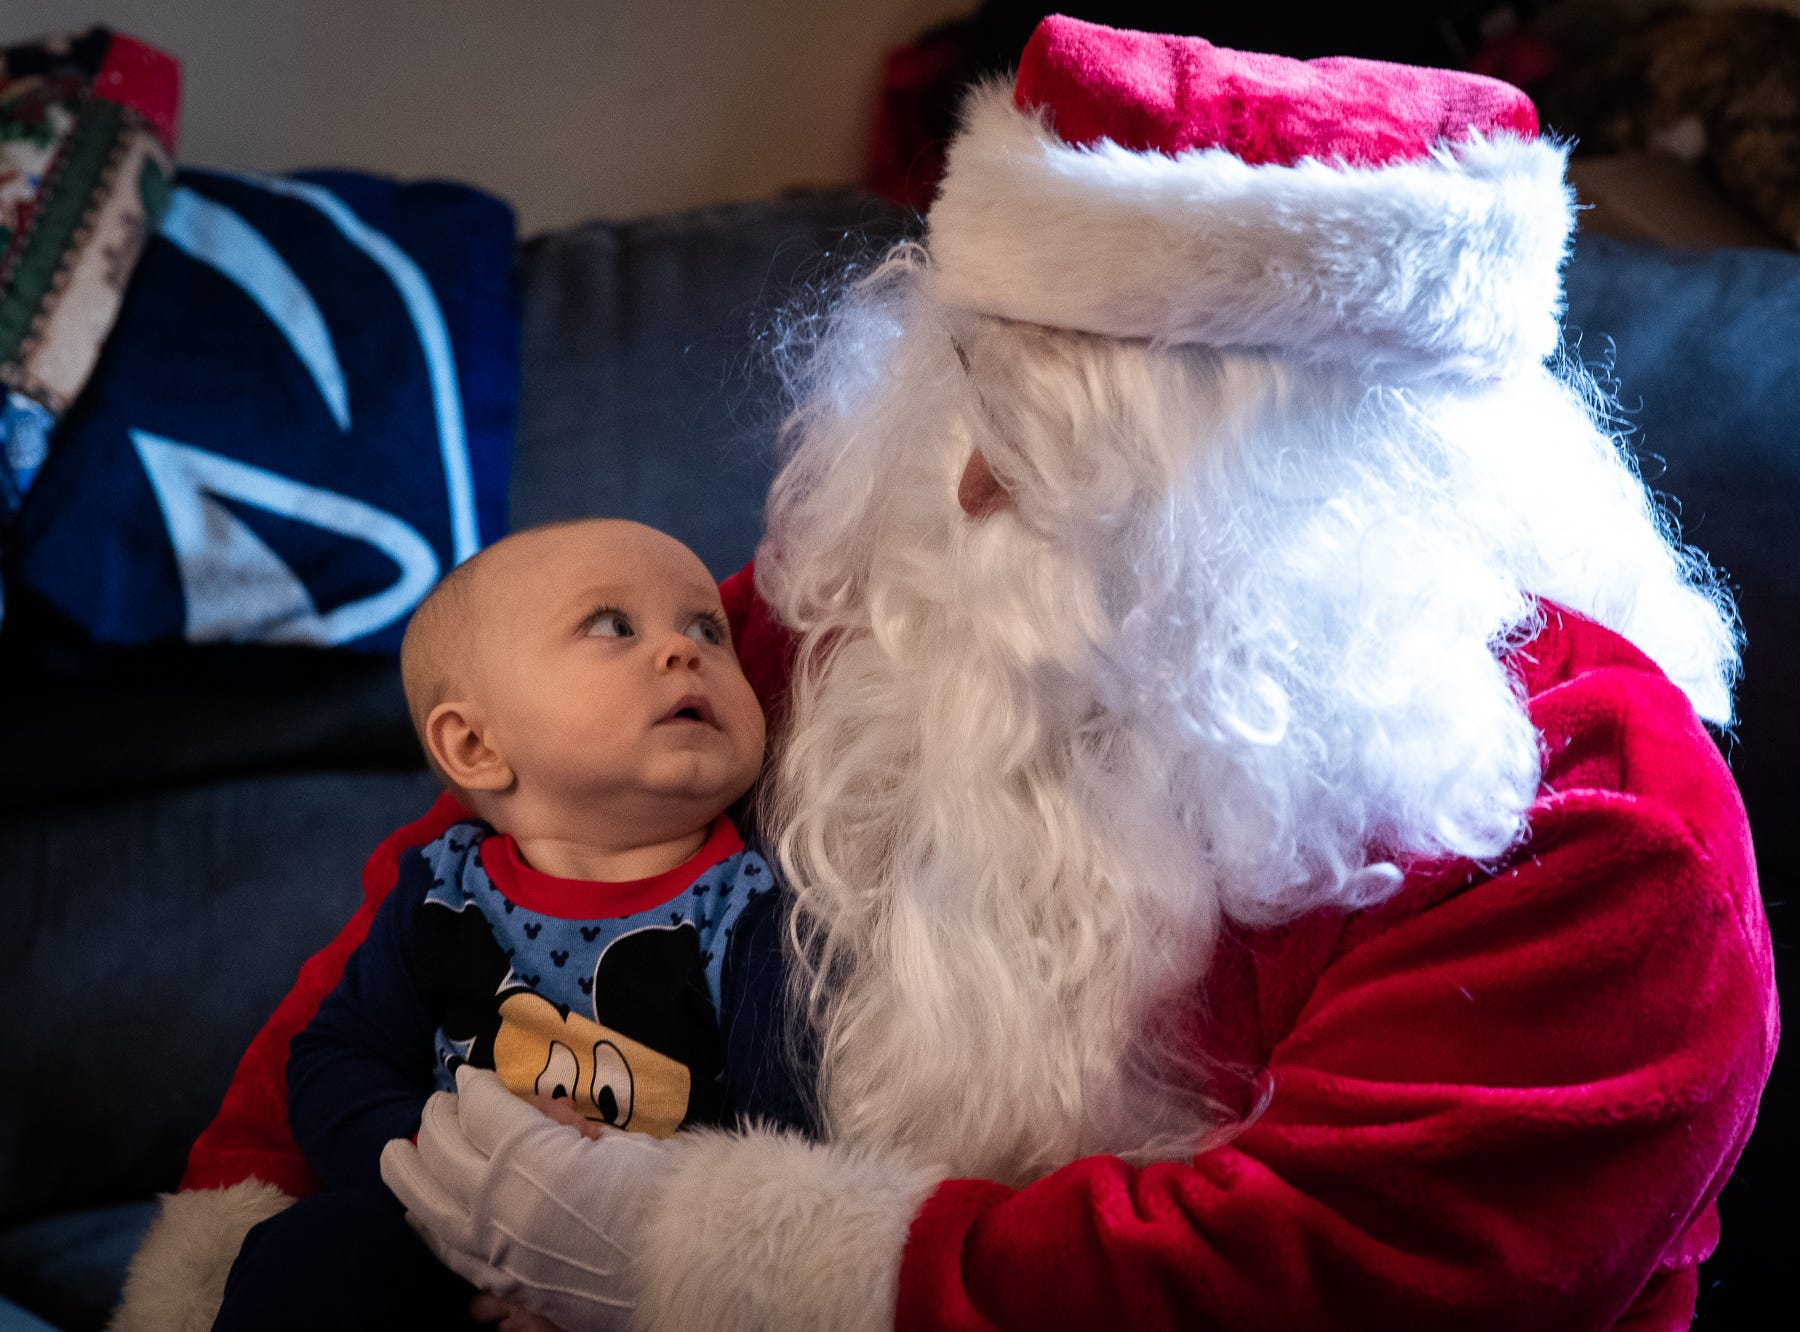 7-month-old Heath reacts to Santa, played by firefighter Wayne Reid, during the S.A.V.E.S Project Santa, Saturday, Dec. 22, 2018, in McSherrystown Borough. The S.A.V.E.S Project Santa donated food, toys, and clothing to 12 local families in need.